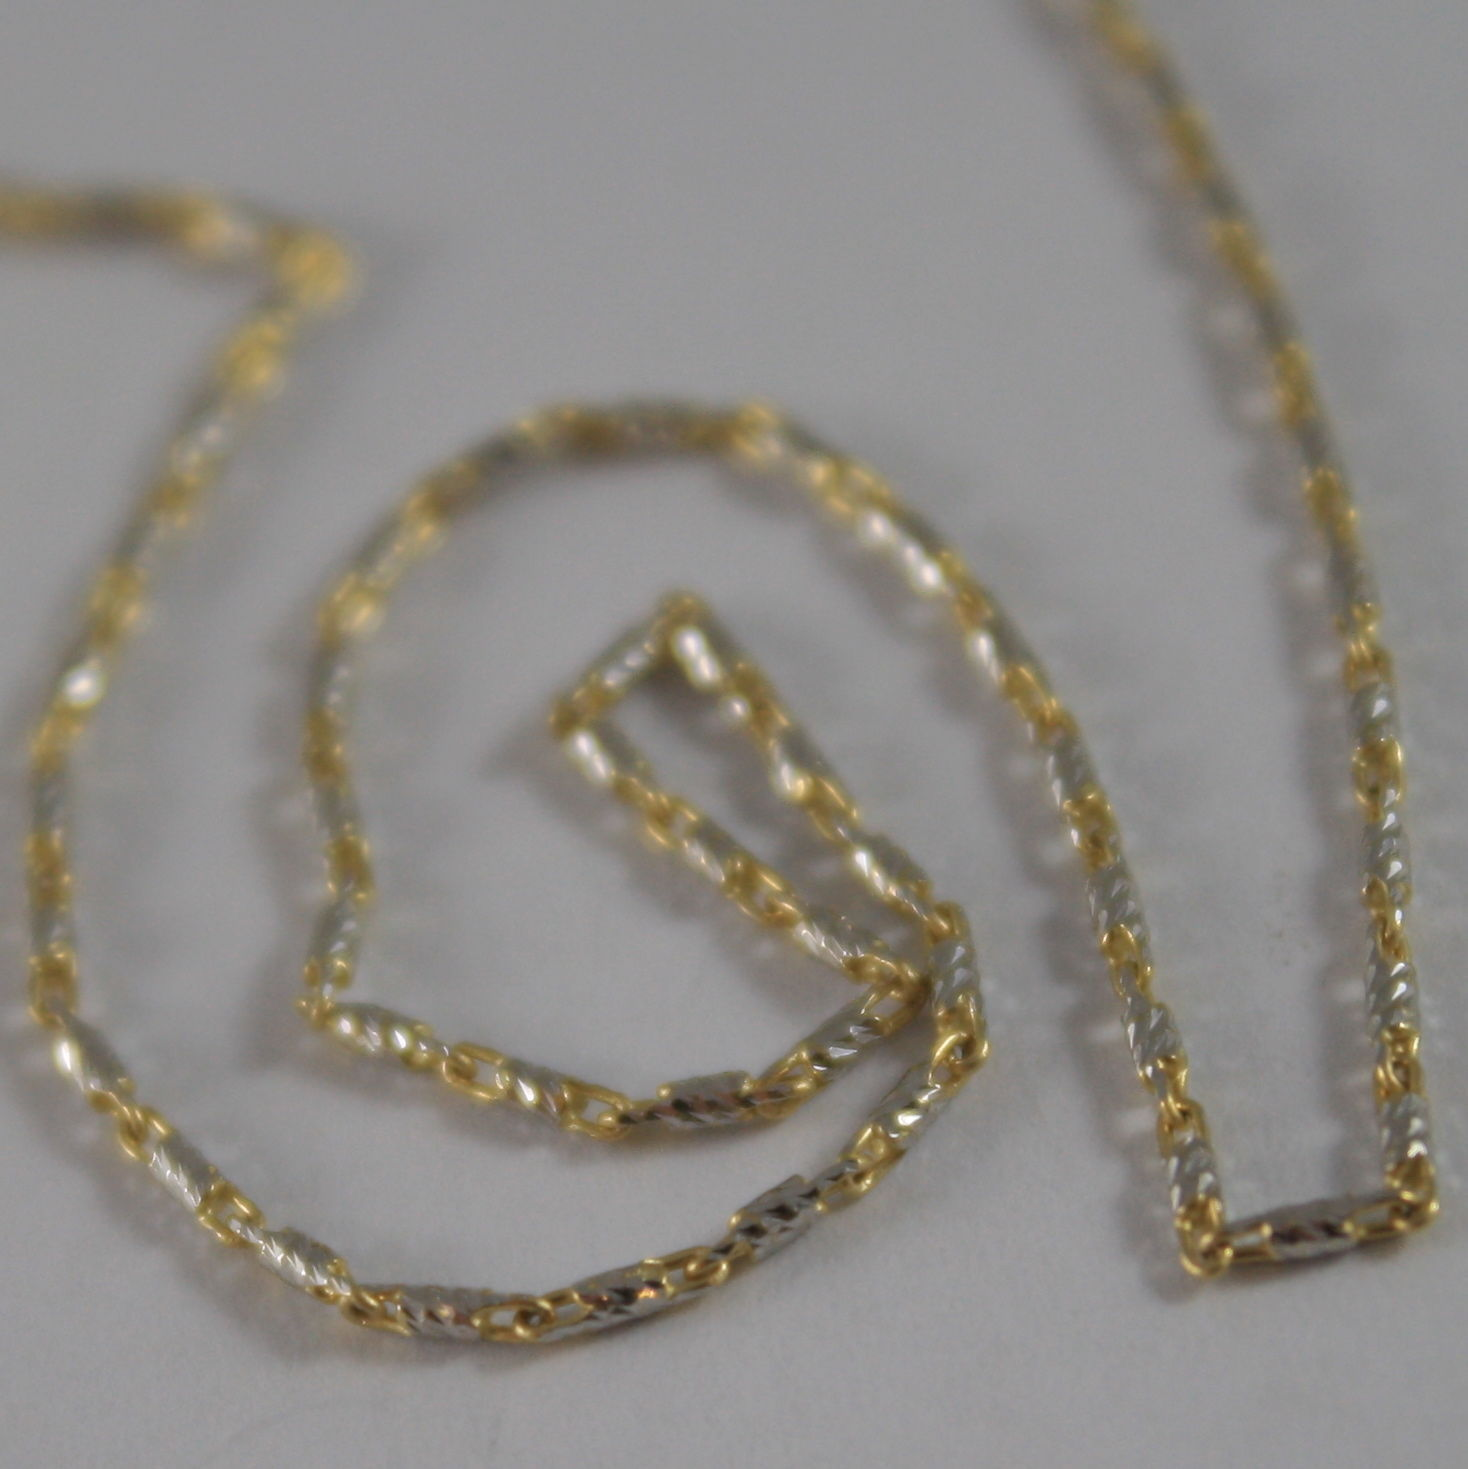 18K YELLOW WHITE GOLD CHAIN, WORKED TUBE 1.3 MM MESH 15.75 IN. MADE IN ITALY